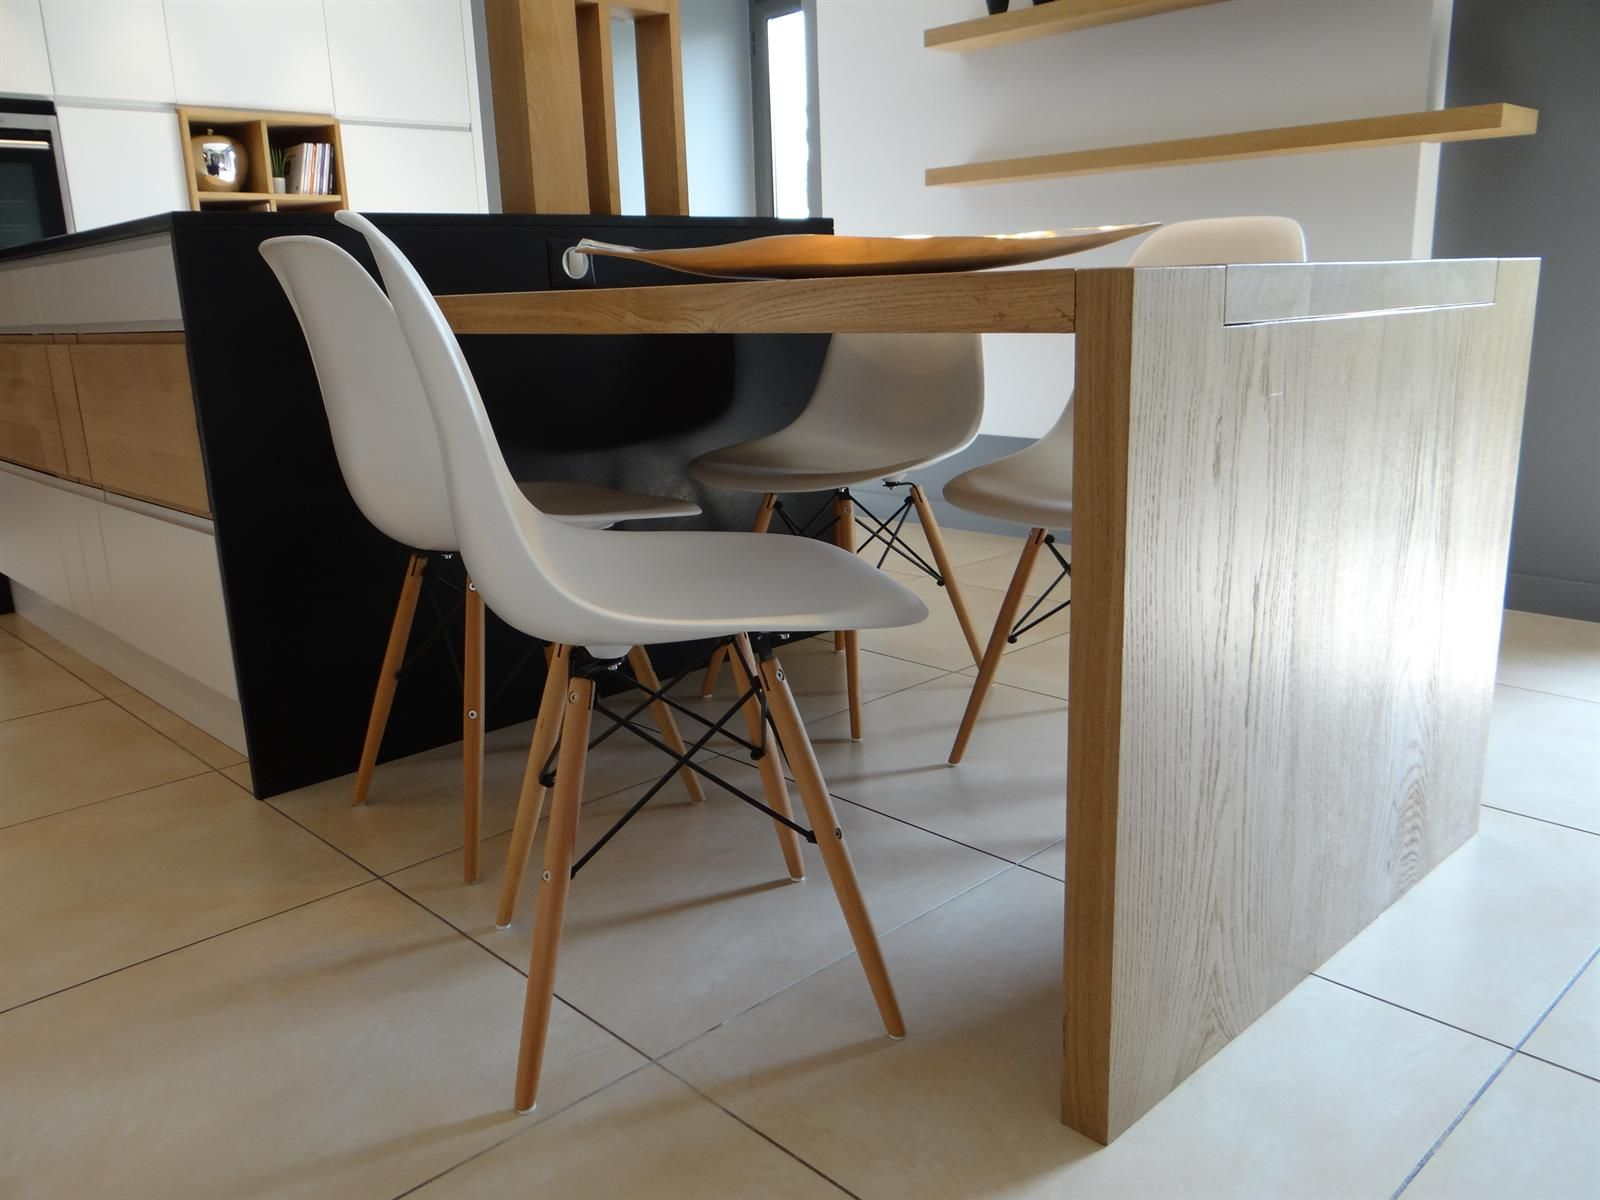 la table de cuisine en bois clair prolonge llot central crant un coin